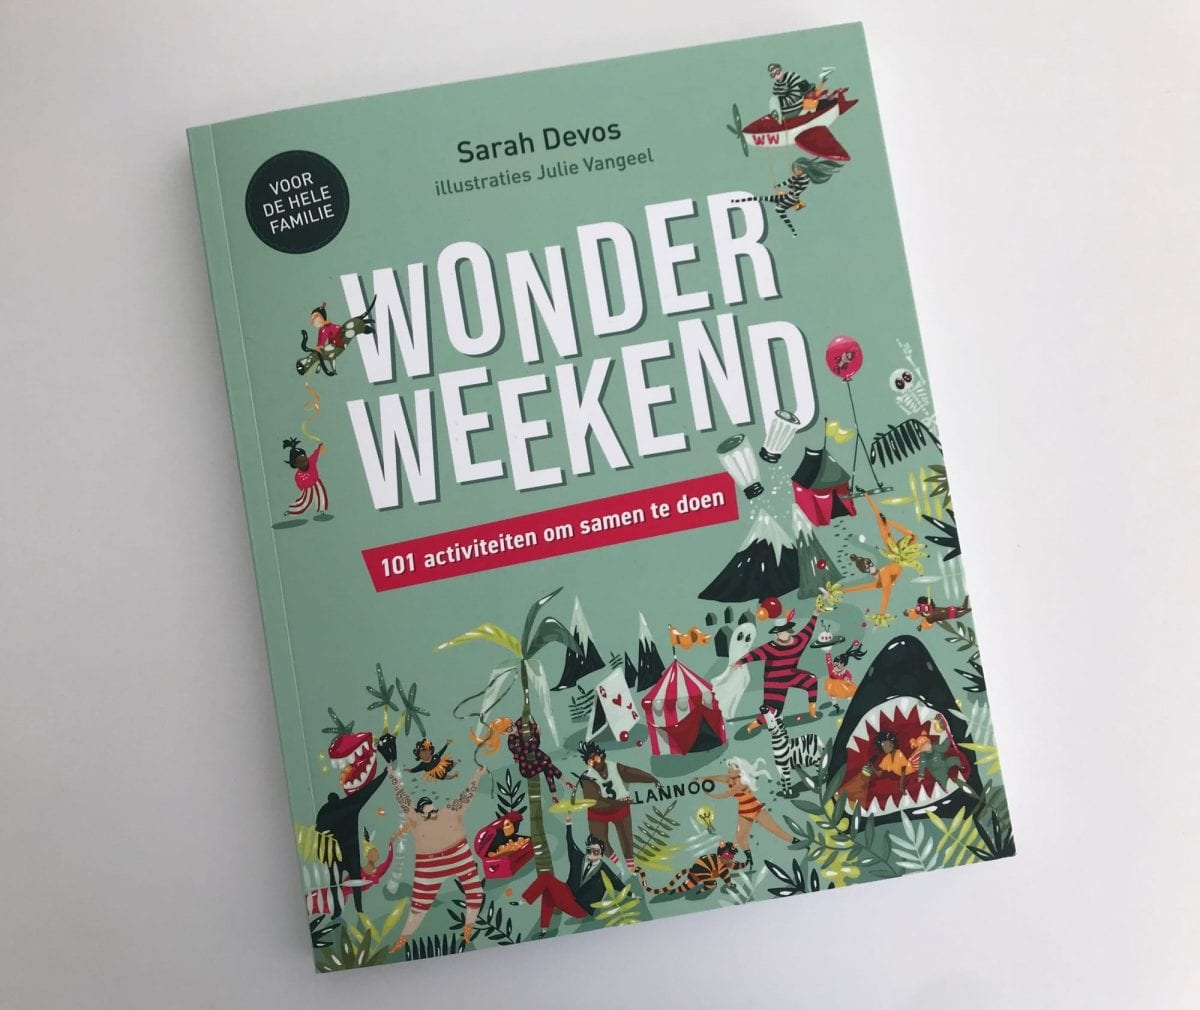 Wonderweekend book with tips and ideas for remarkable weekends